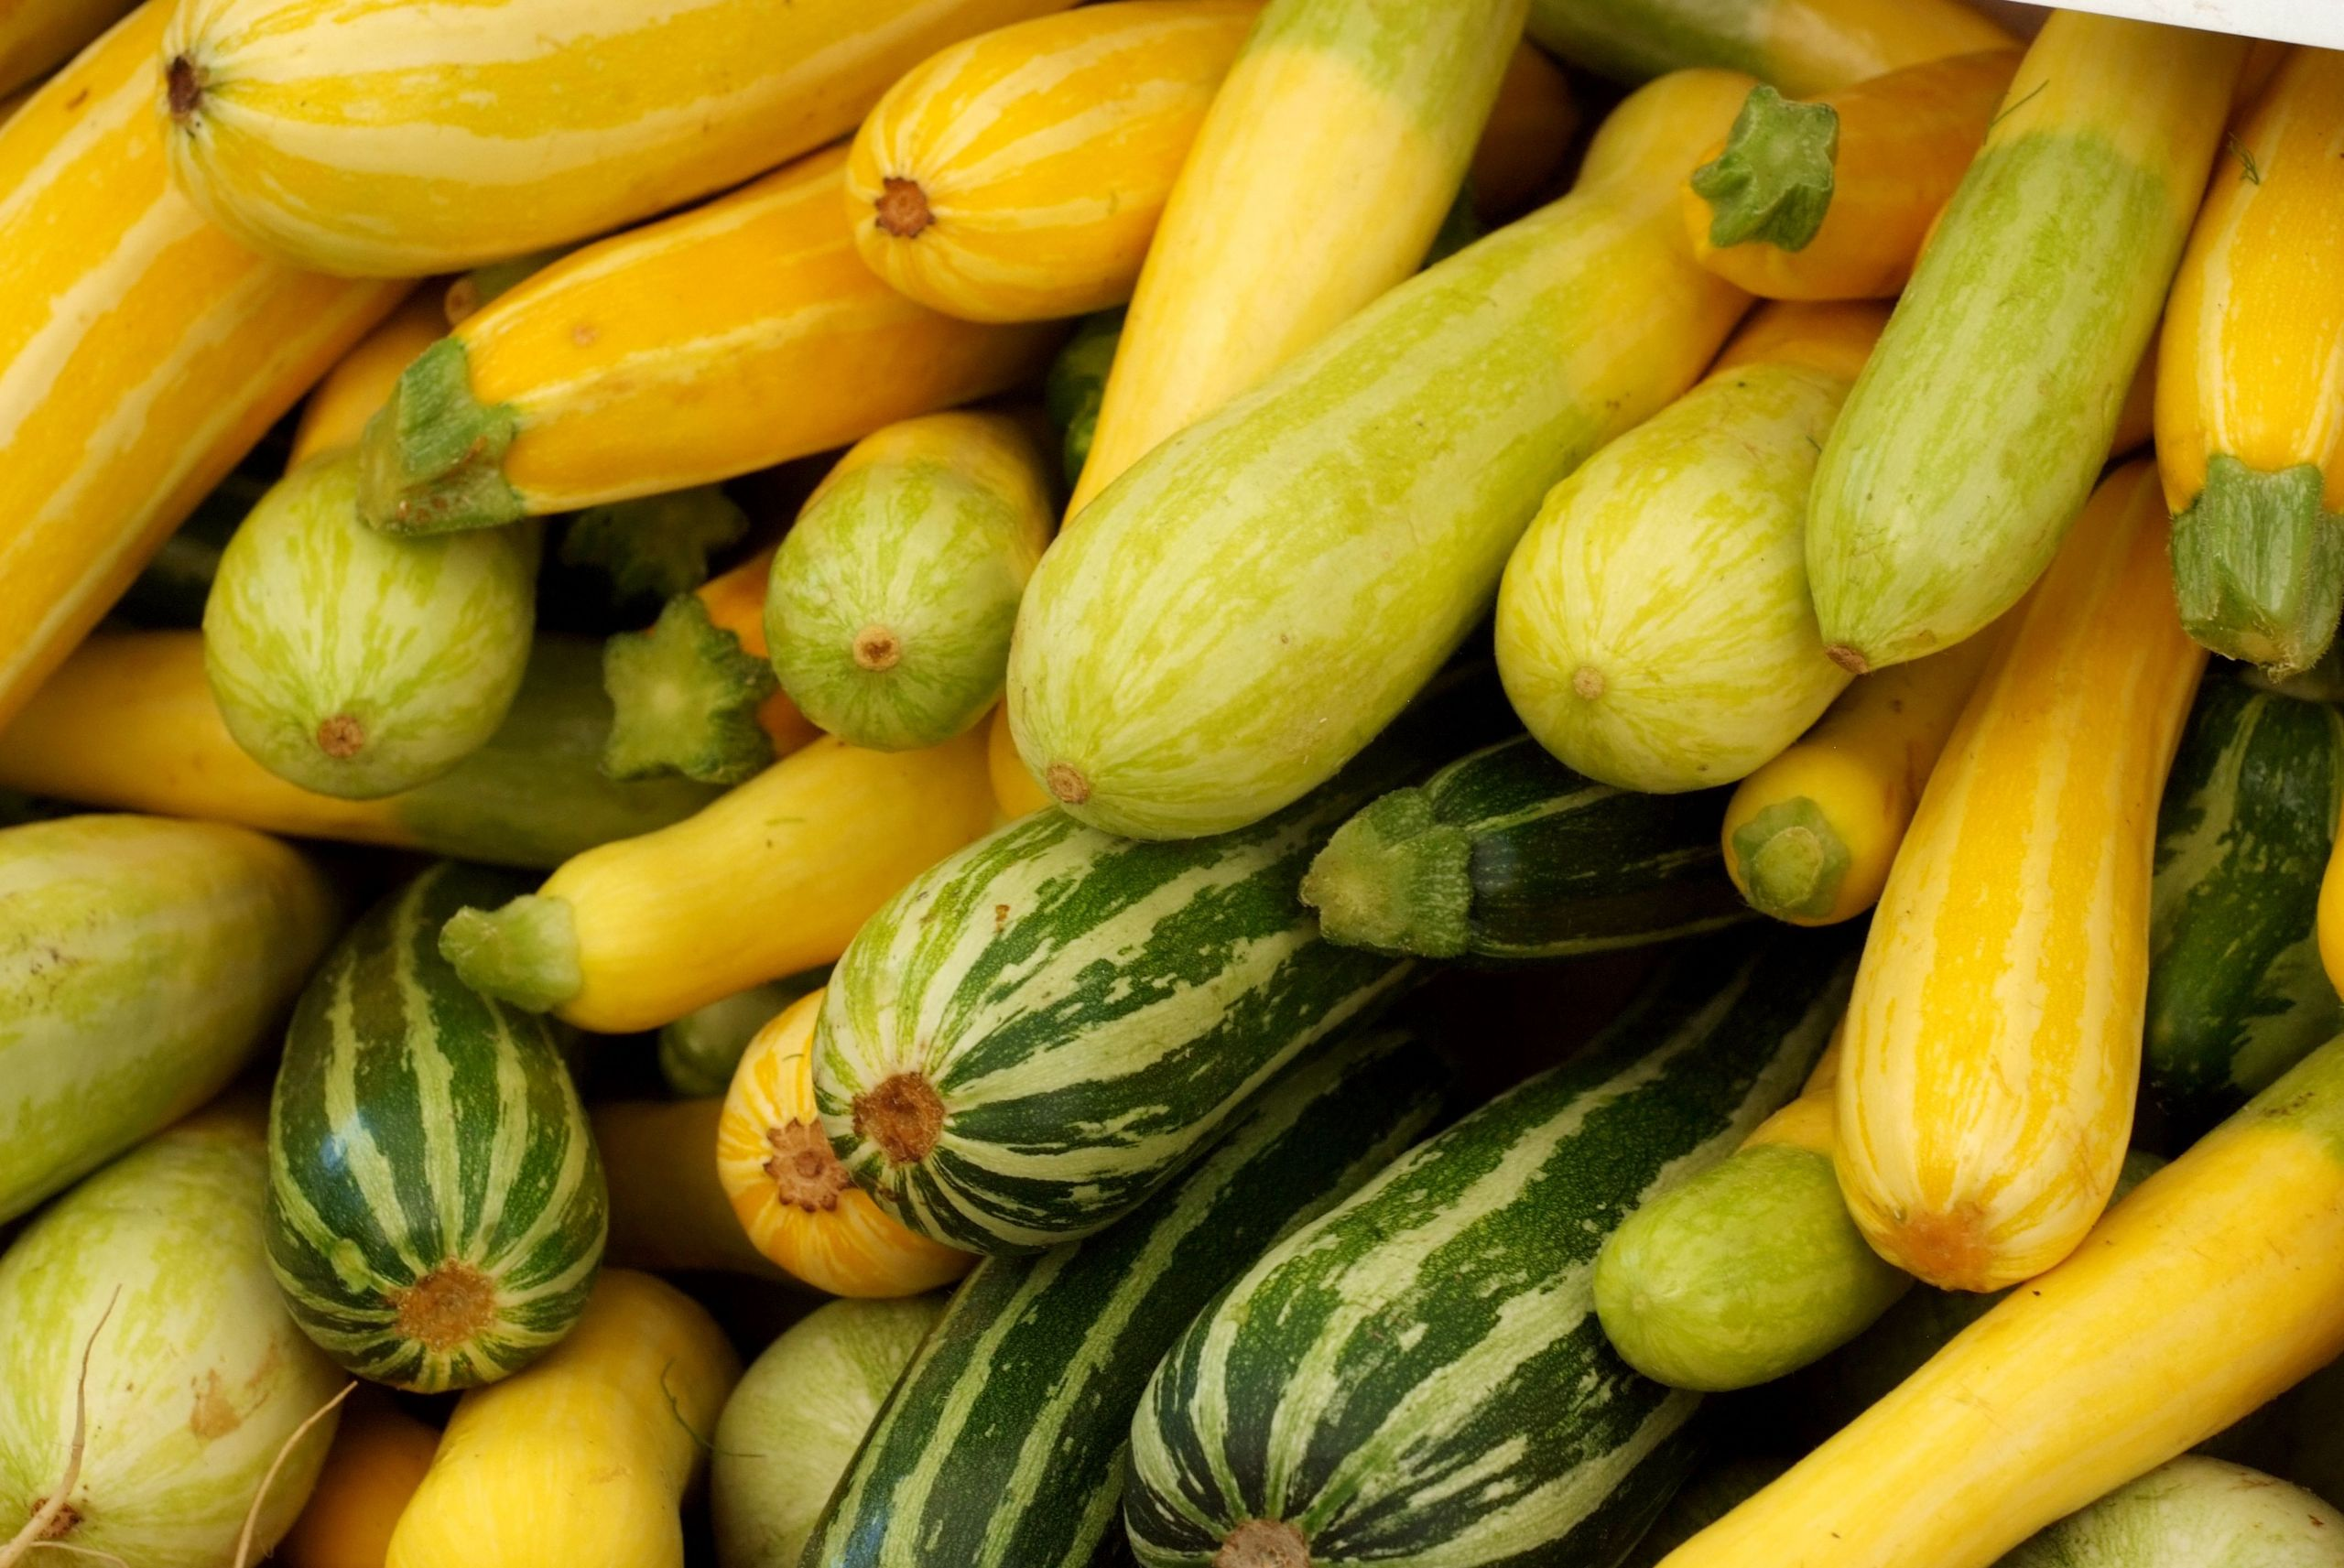 Summer Squash Nutrition  Summer Squash and Zucchini Nutrition Facts